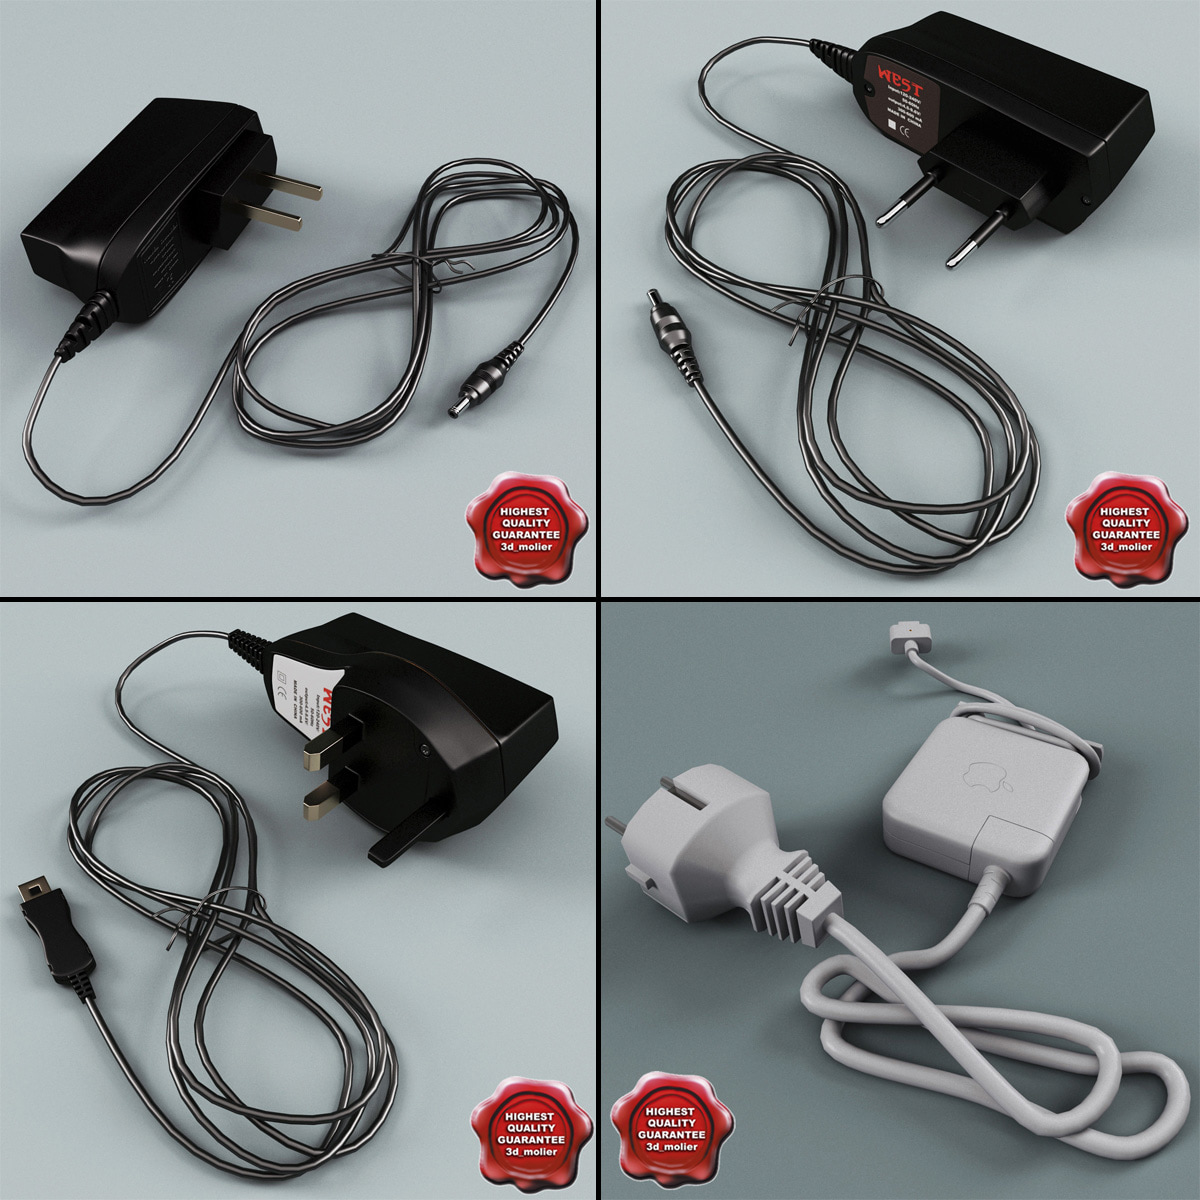 phone chargers v2 3d model